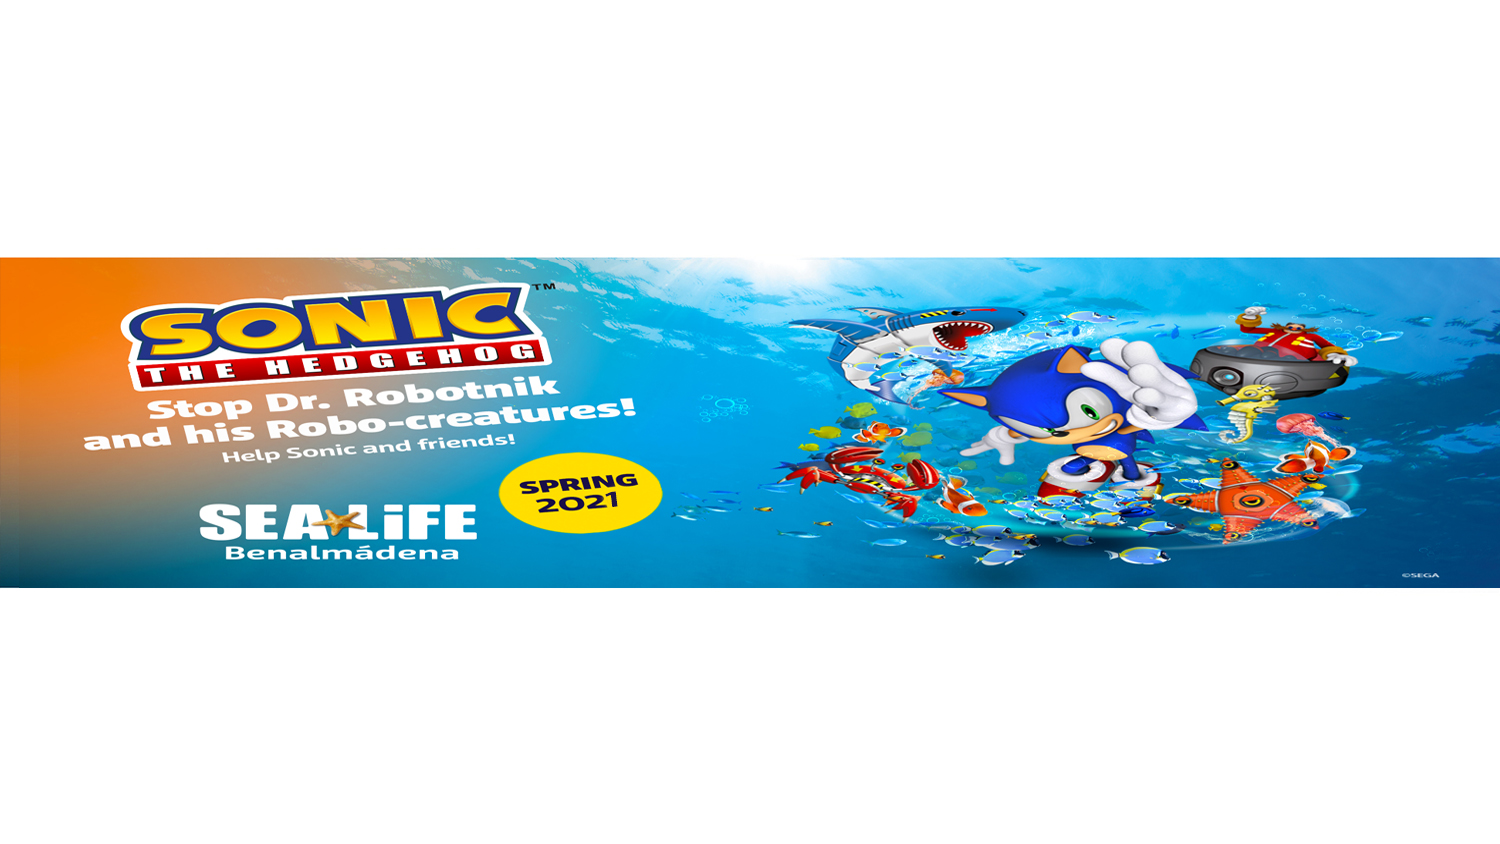 Sonic the hedgehog event in SEA LIFE Benalmadena